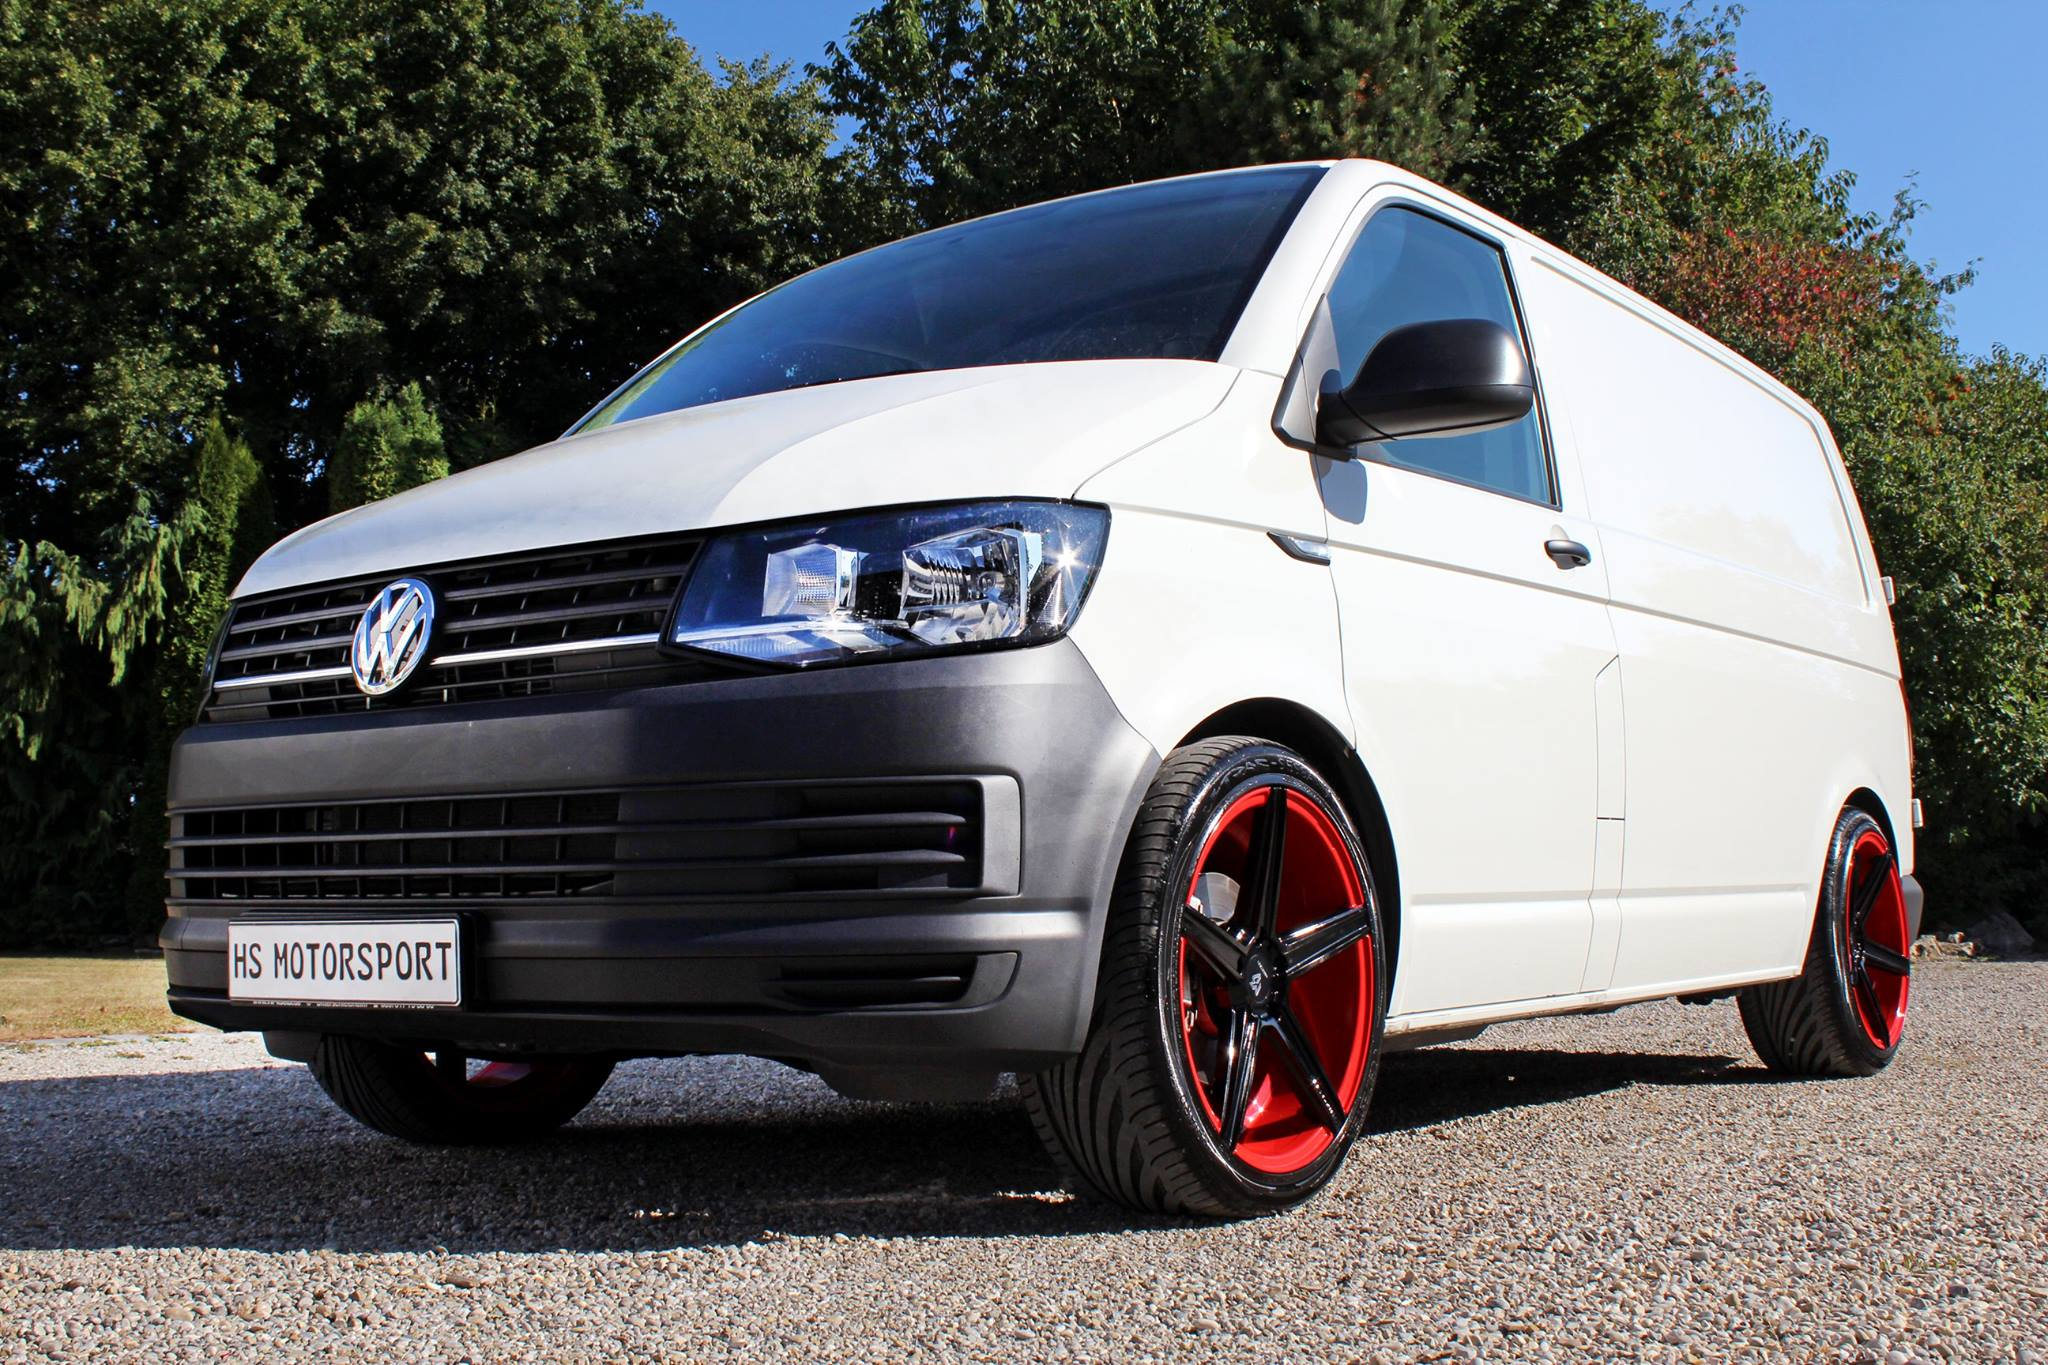 Volkswagen T6 Transporter 2 0 Tdi Tuned By Hs Motorsport